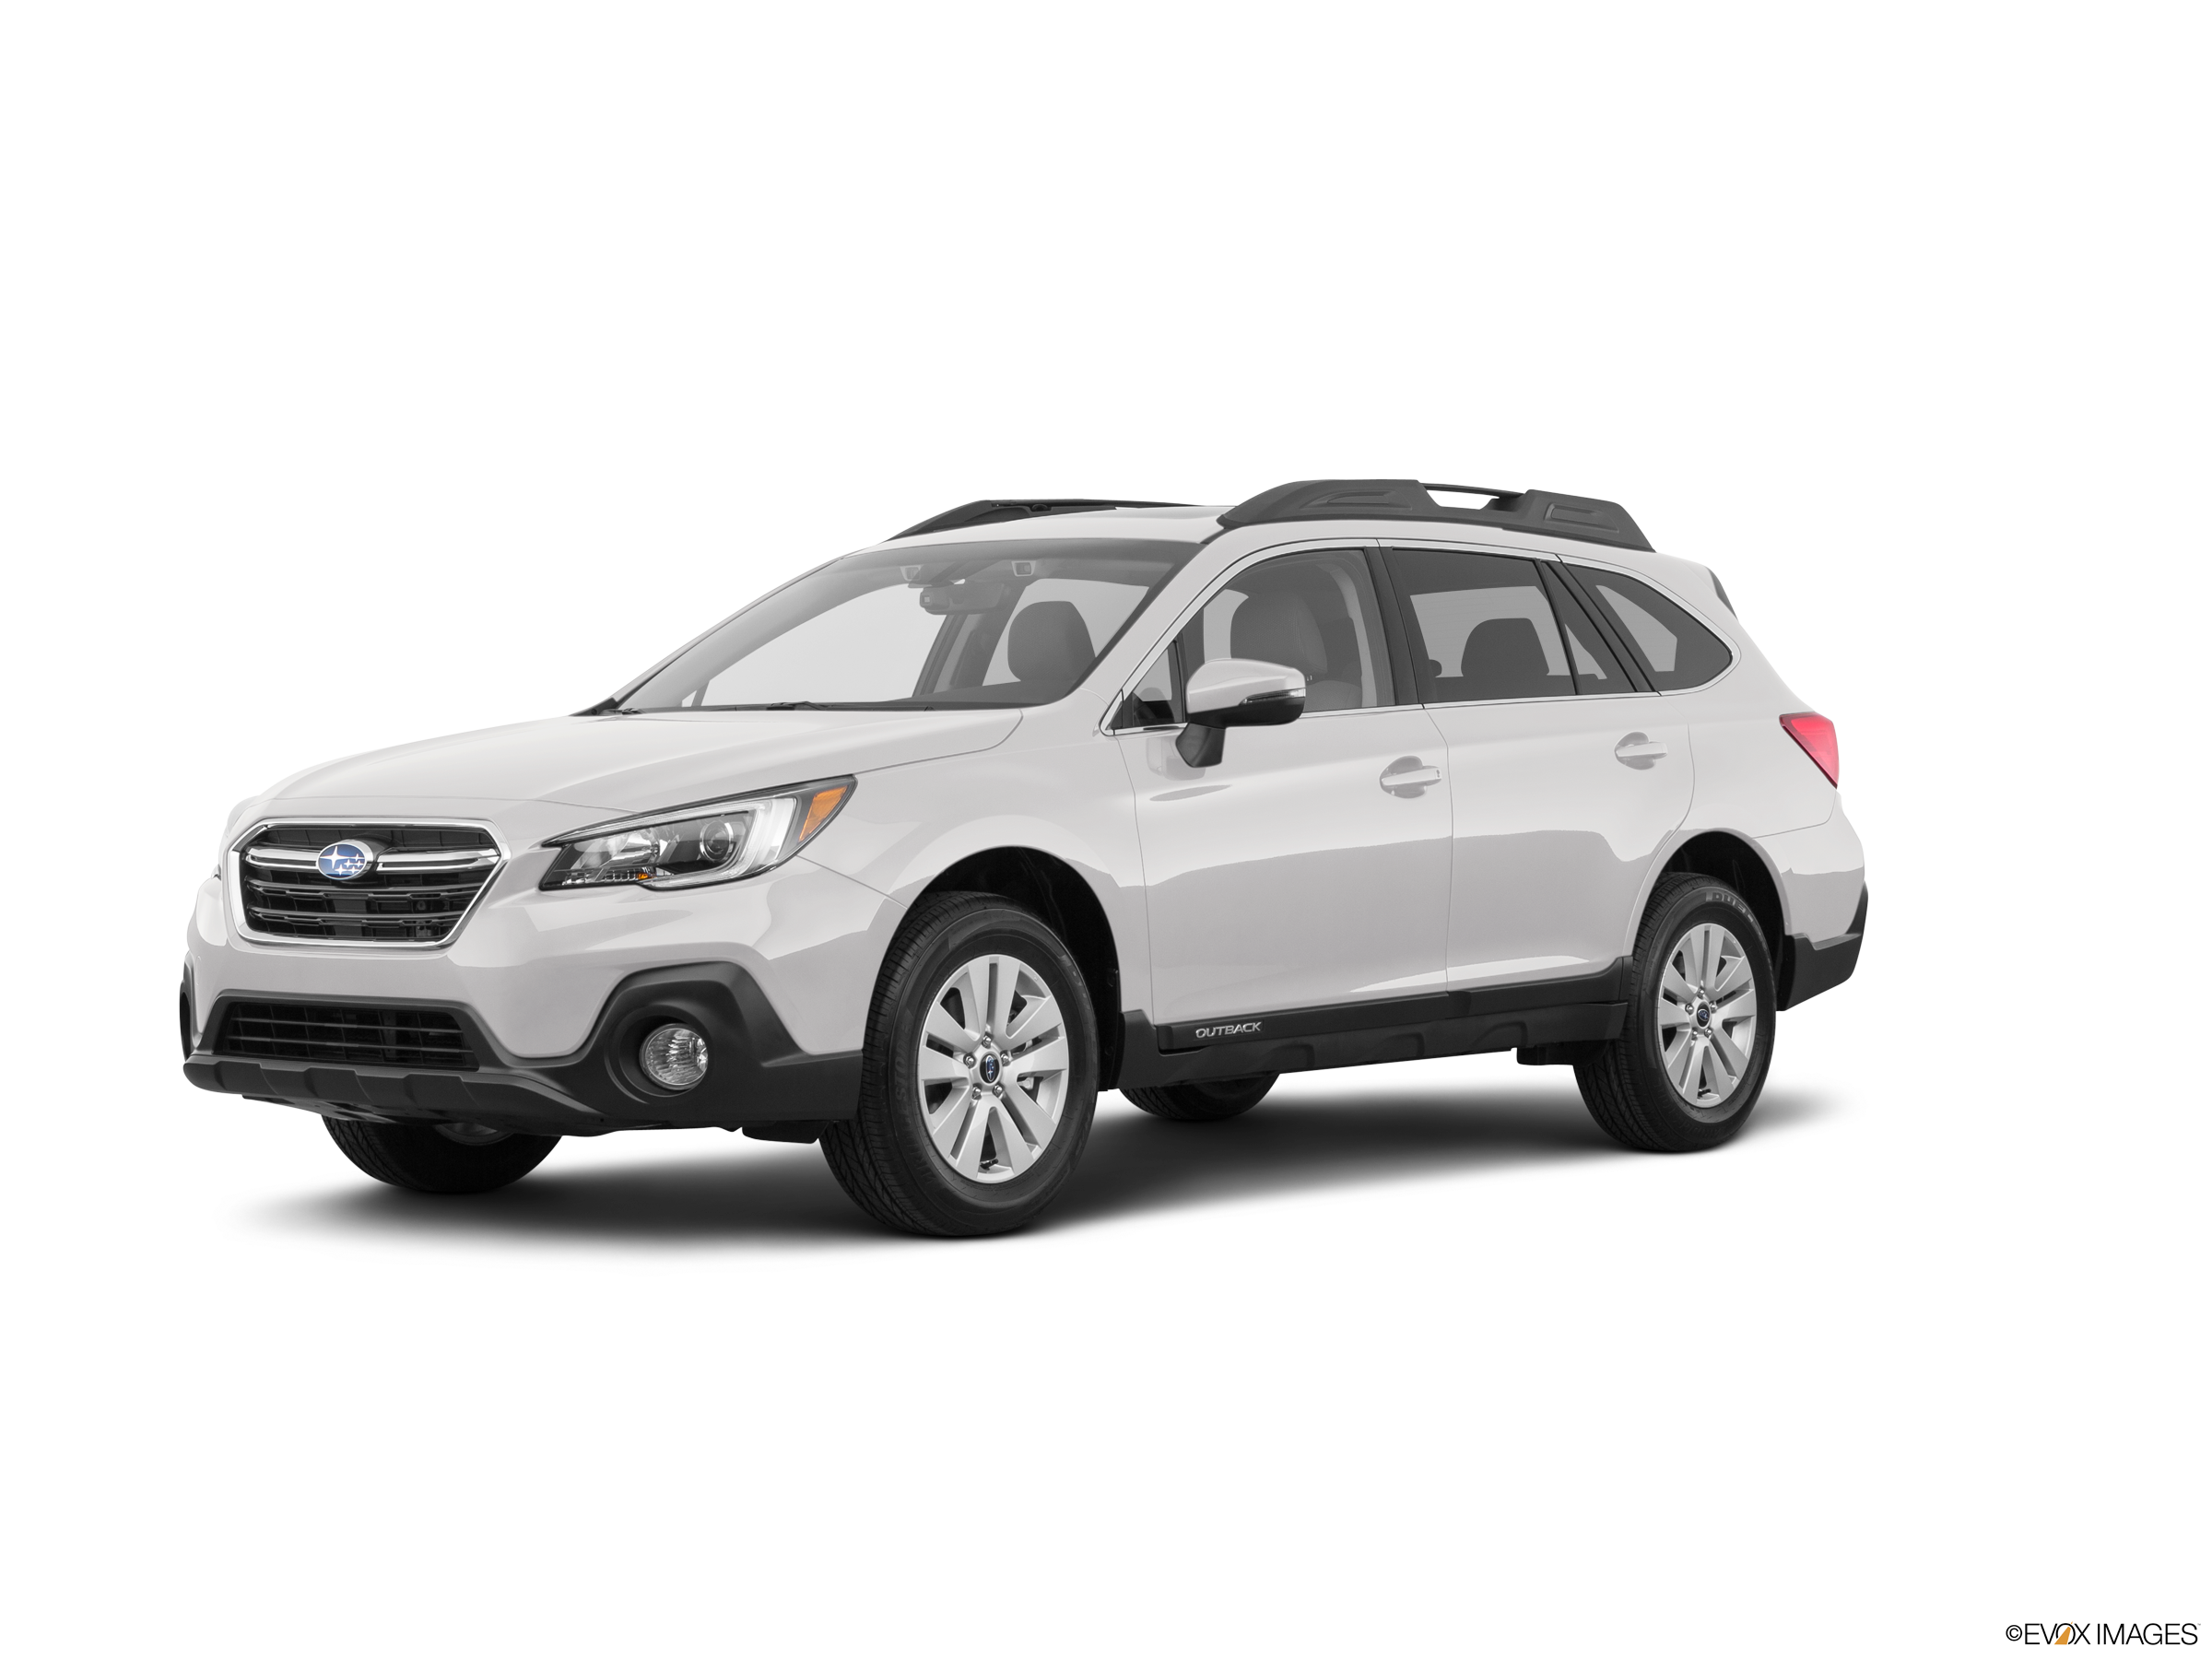 Most Popular Wagons of 2018 - 2018 Subaru Outback